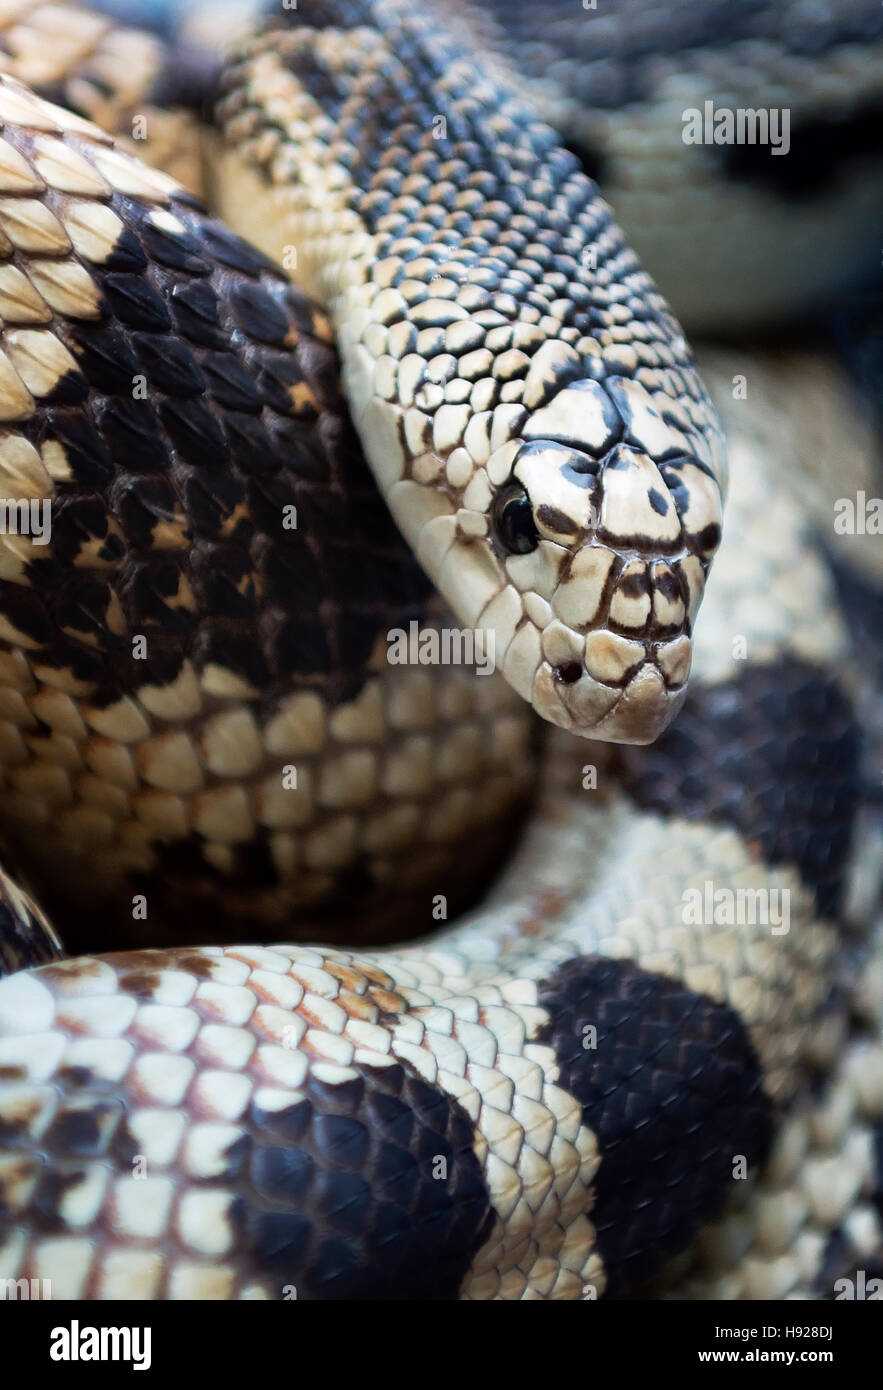 Northern Pine Snake. - Stock Image